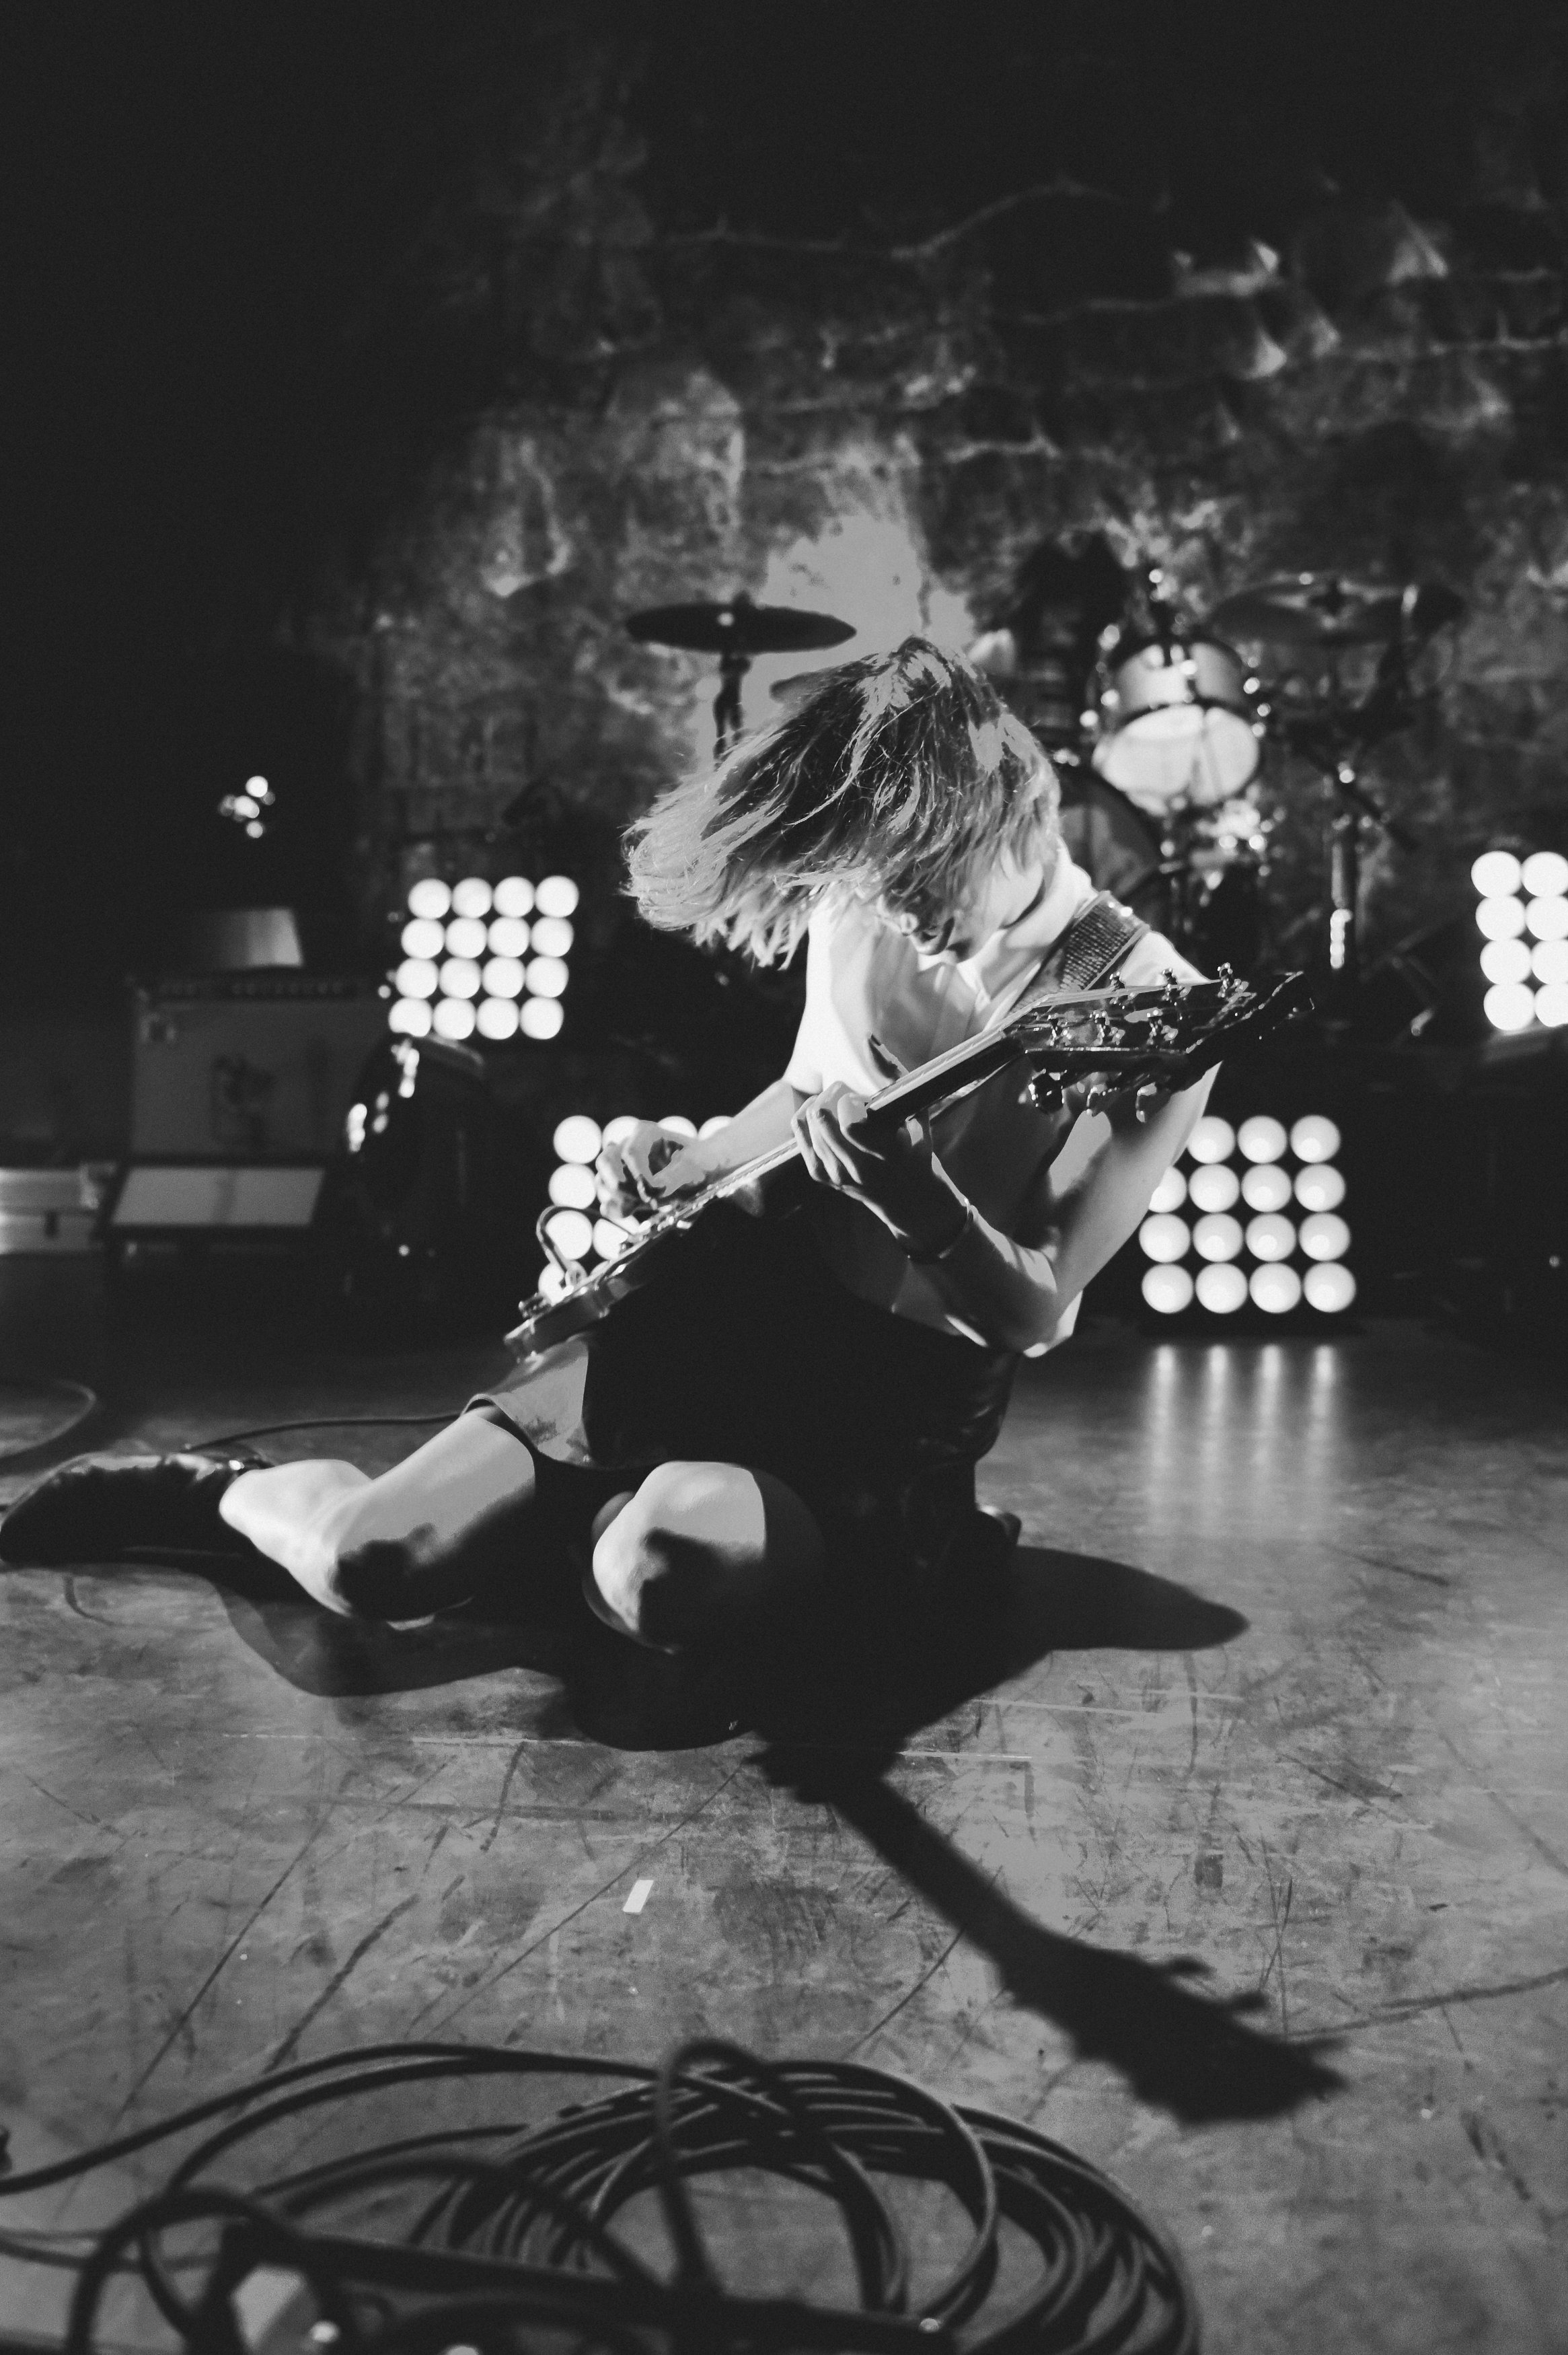 Sleater-Kinney at the Civic Theater by Adrienne Battistella